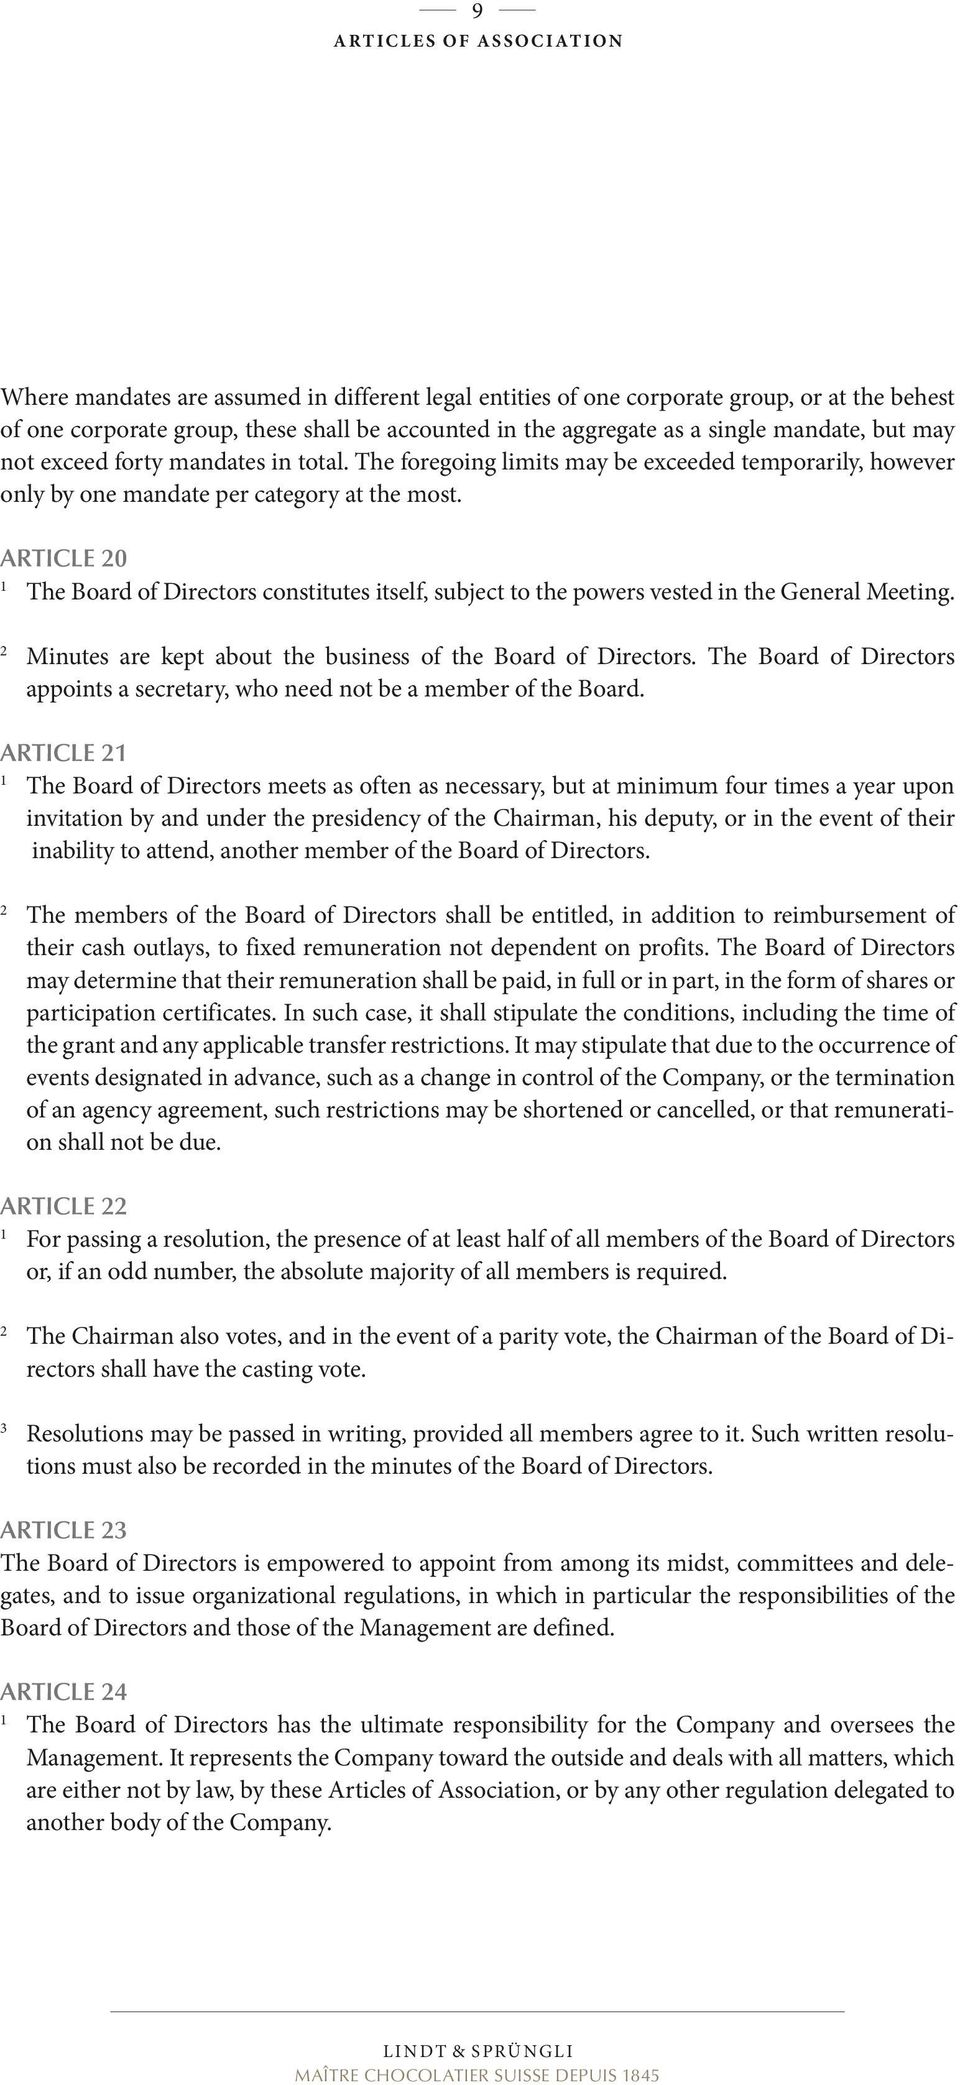 ARTICLE 0 The Board of Directors constitutes itself, subject to the powers vested in the General Meeting. Minutes are kept about the business of the Board of Directors.